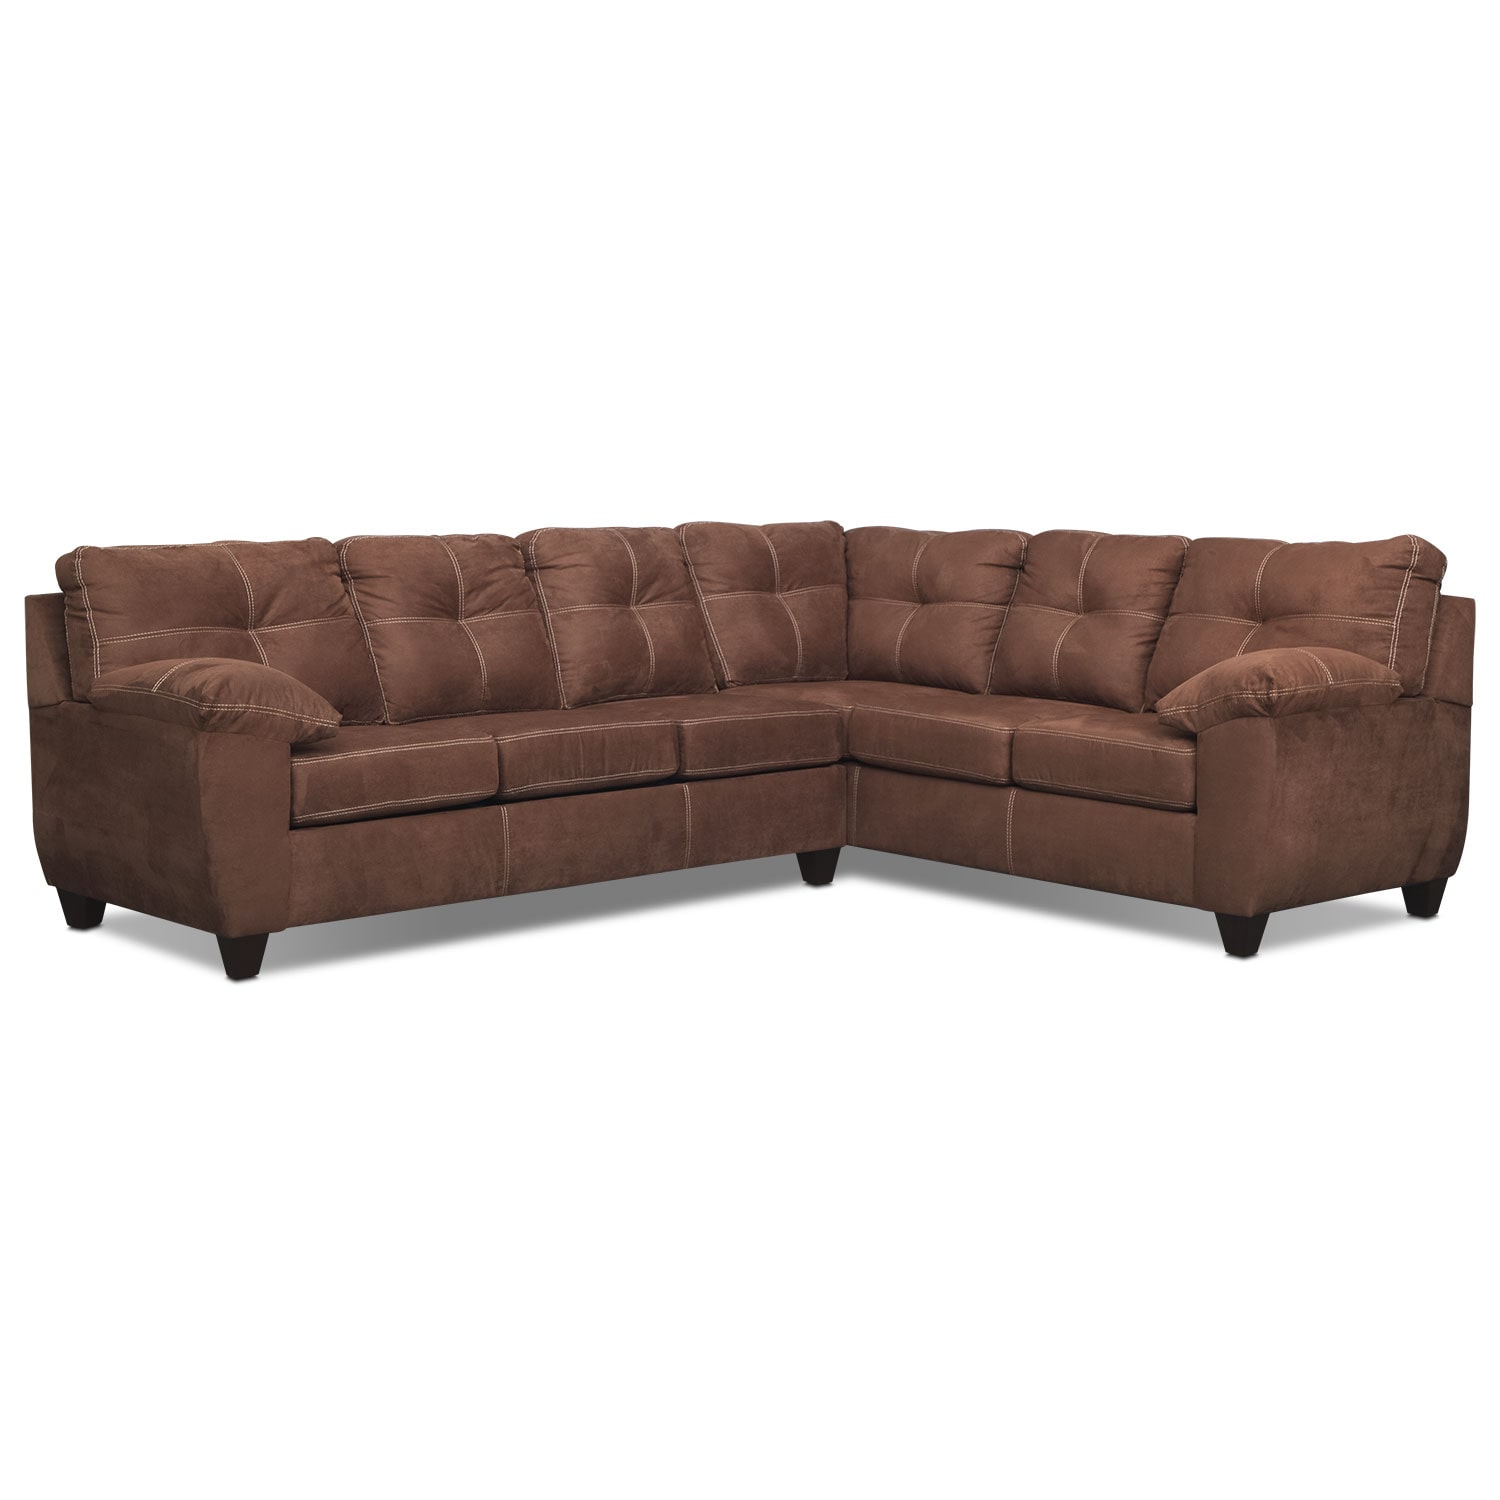 Gentil Ricardo 2 Piece Innerspring Sleeper Sectional With Right Facing Sofa    Coffee